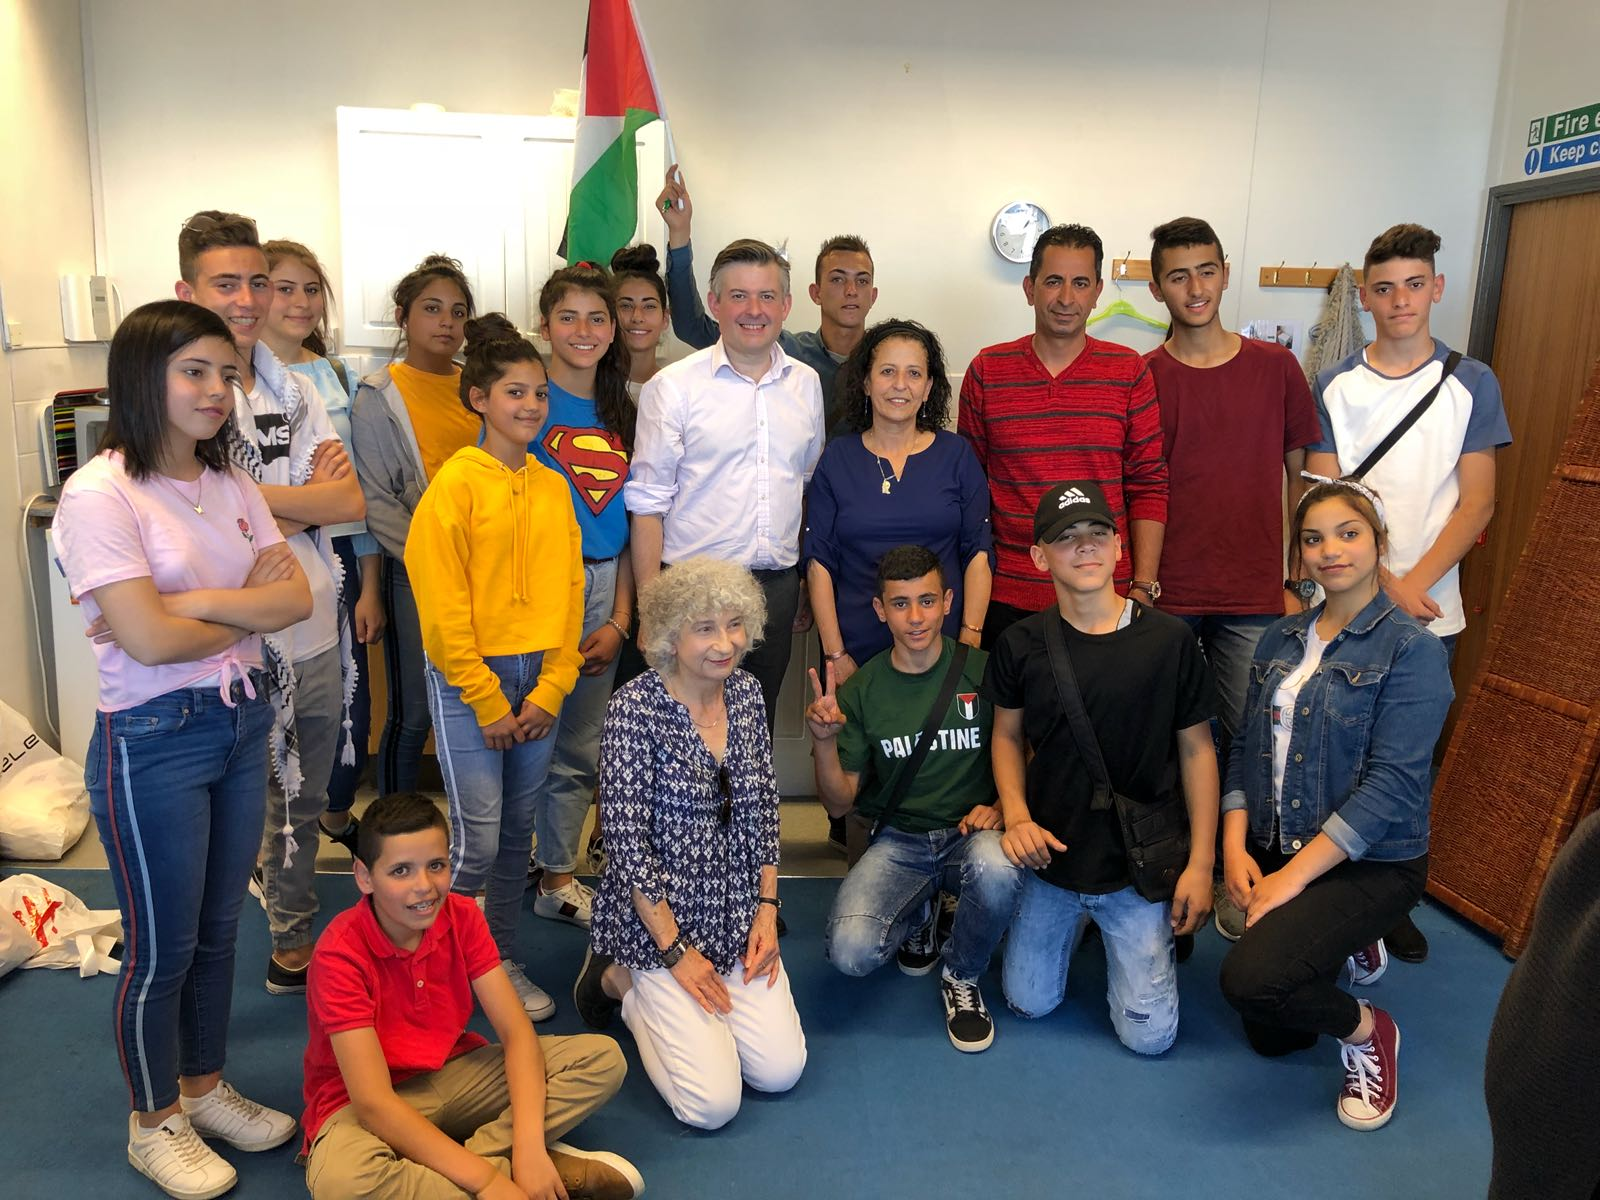 Jon Ashworth met inspirational young people from the Hakaya Band which is part of the Ghirass Cultural Centre in Bethlehem - Friday June 29 2018